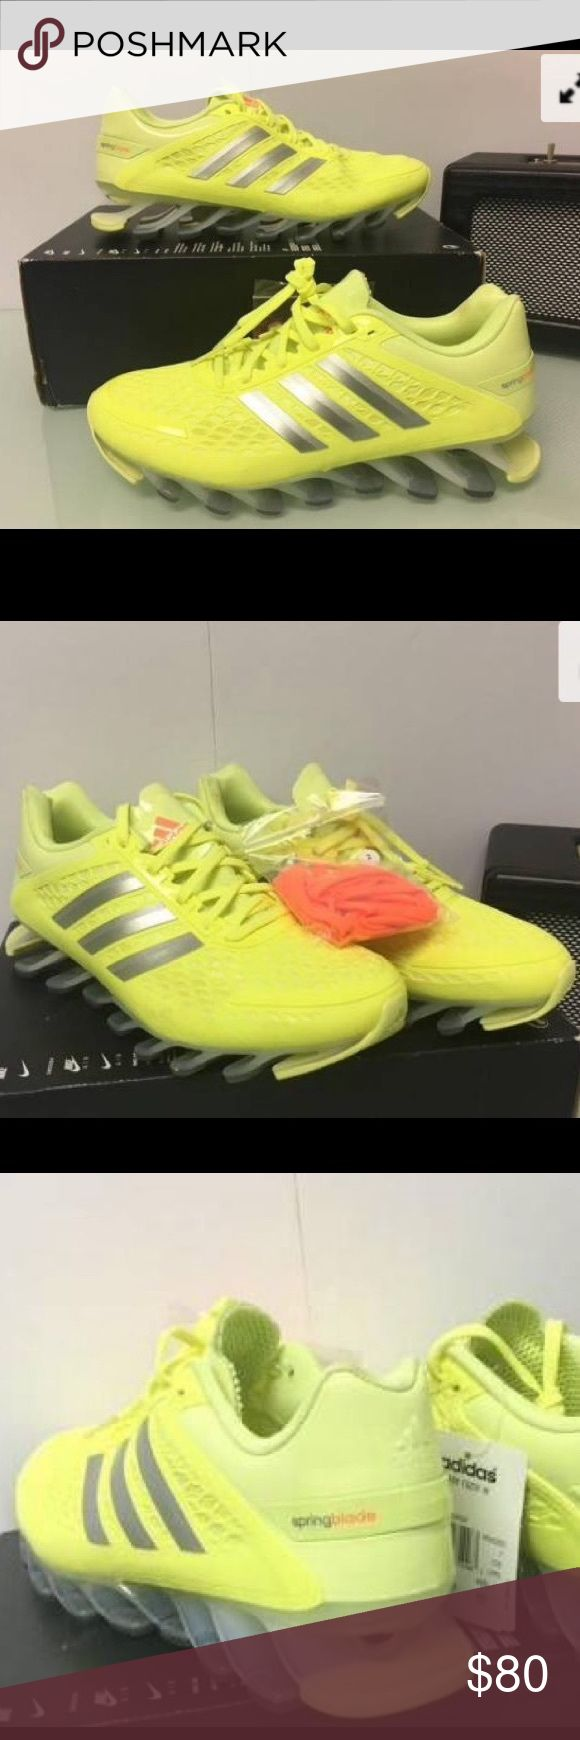 Adidas Spring Blade Razor  Running Women's The ADIDAS SPRINGBLADE RAZOR WOMENS RUNNING SHOE                                          Designed with transparent blades, feel like you're running on air.                                                    * New w//o Box * Synthetic and Mesh * Rubber sole *Breathable mesh upper * Comfortable textile lining adidas Shoes Athletic Shoes